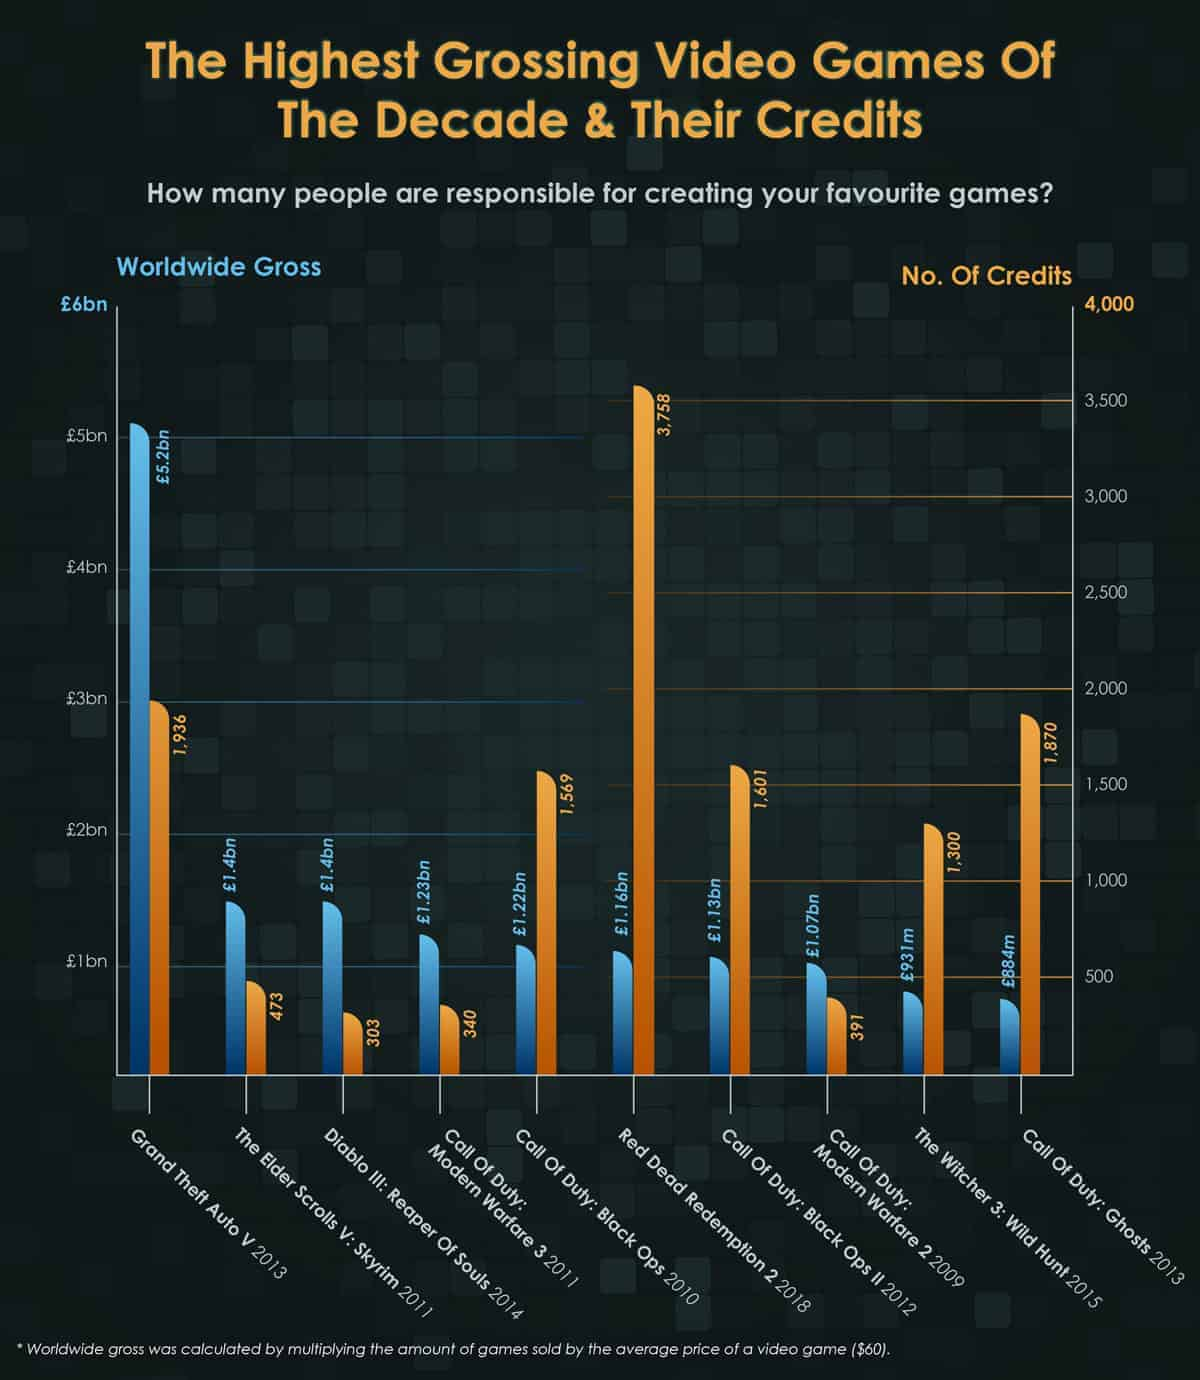 The Highest Grossing Video Games Of The Decade & Their Credits